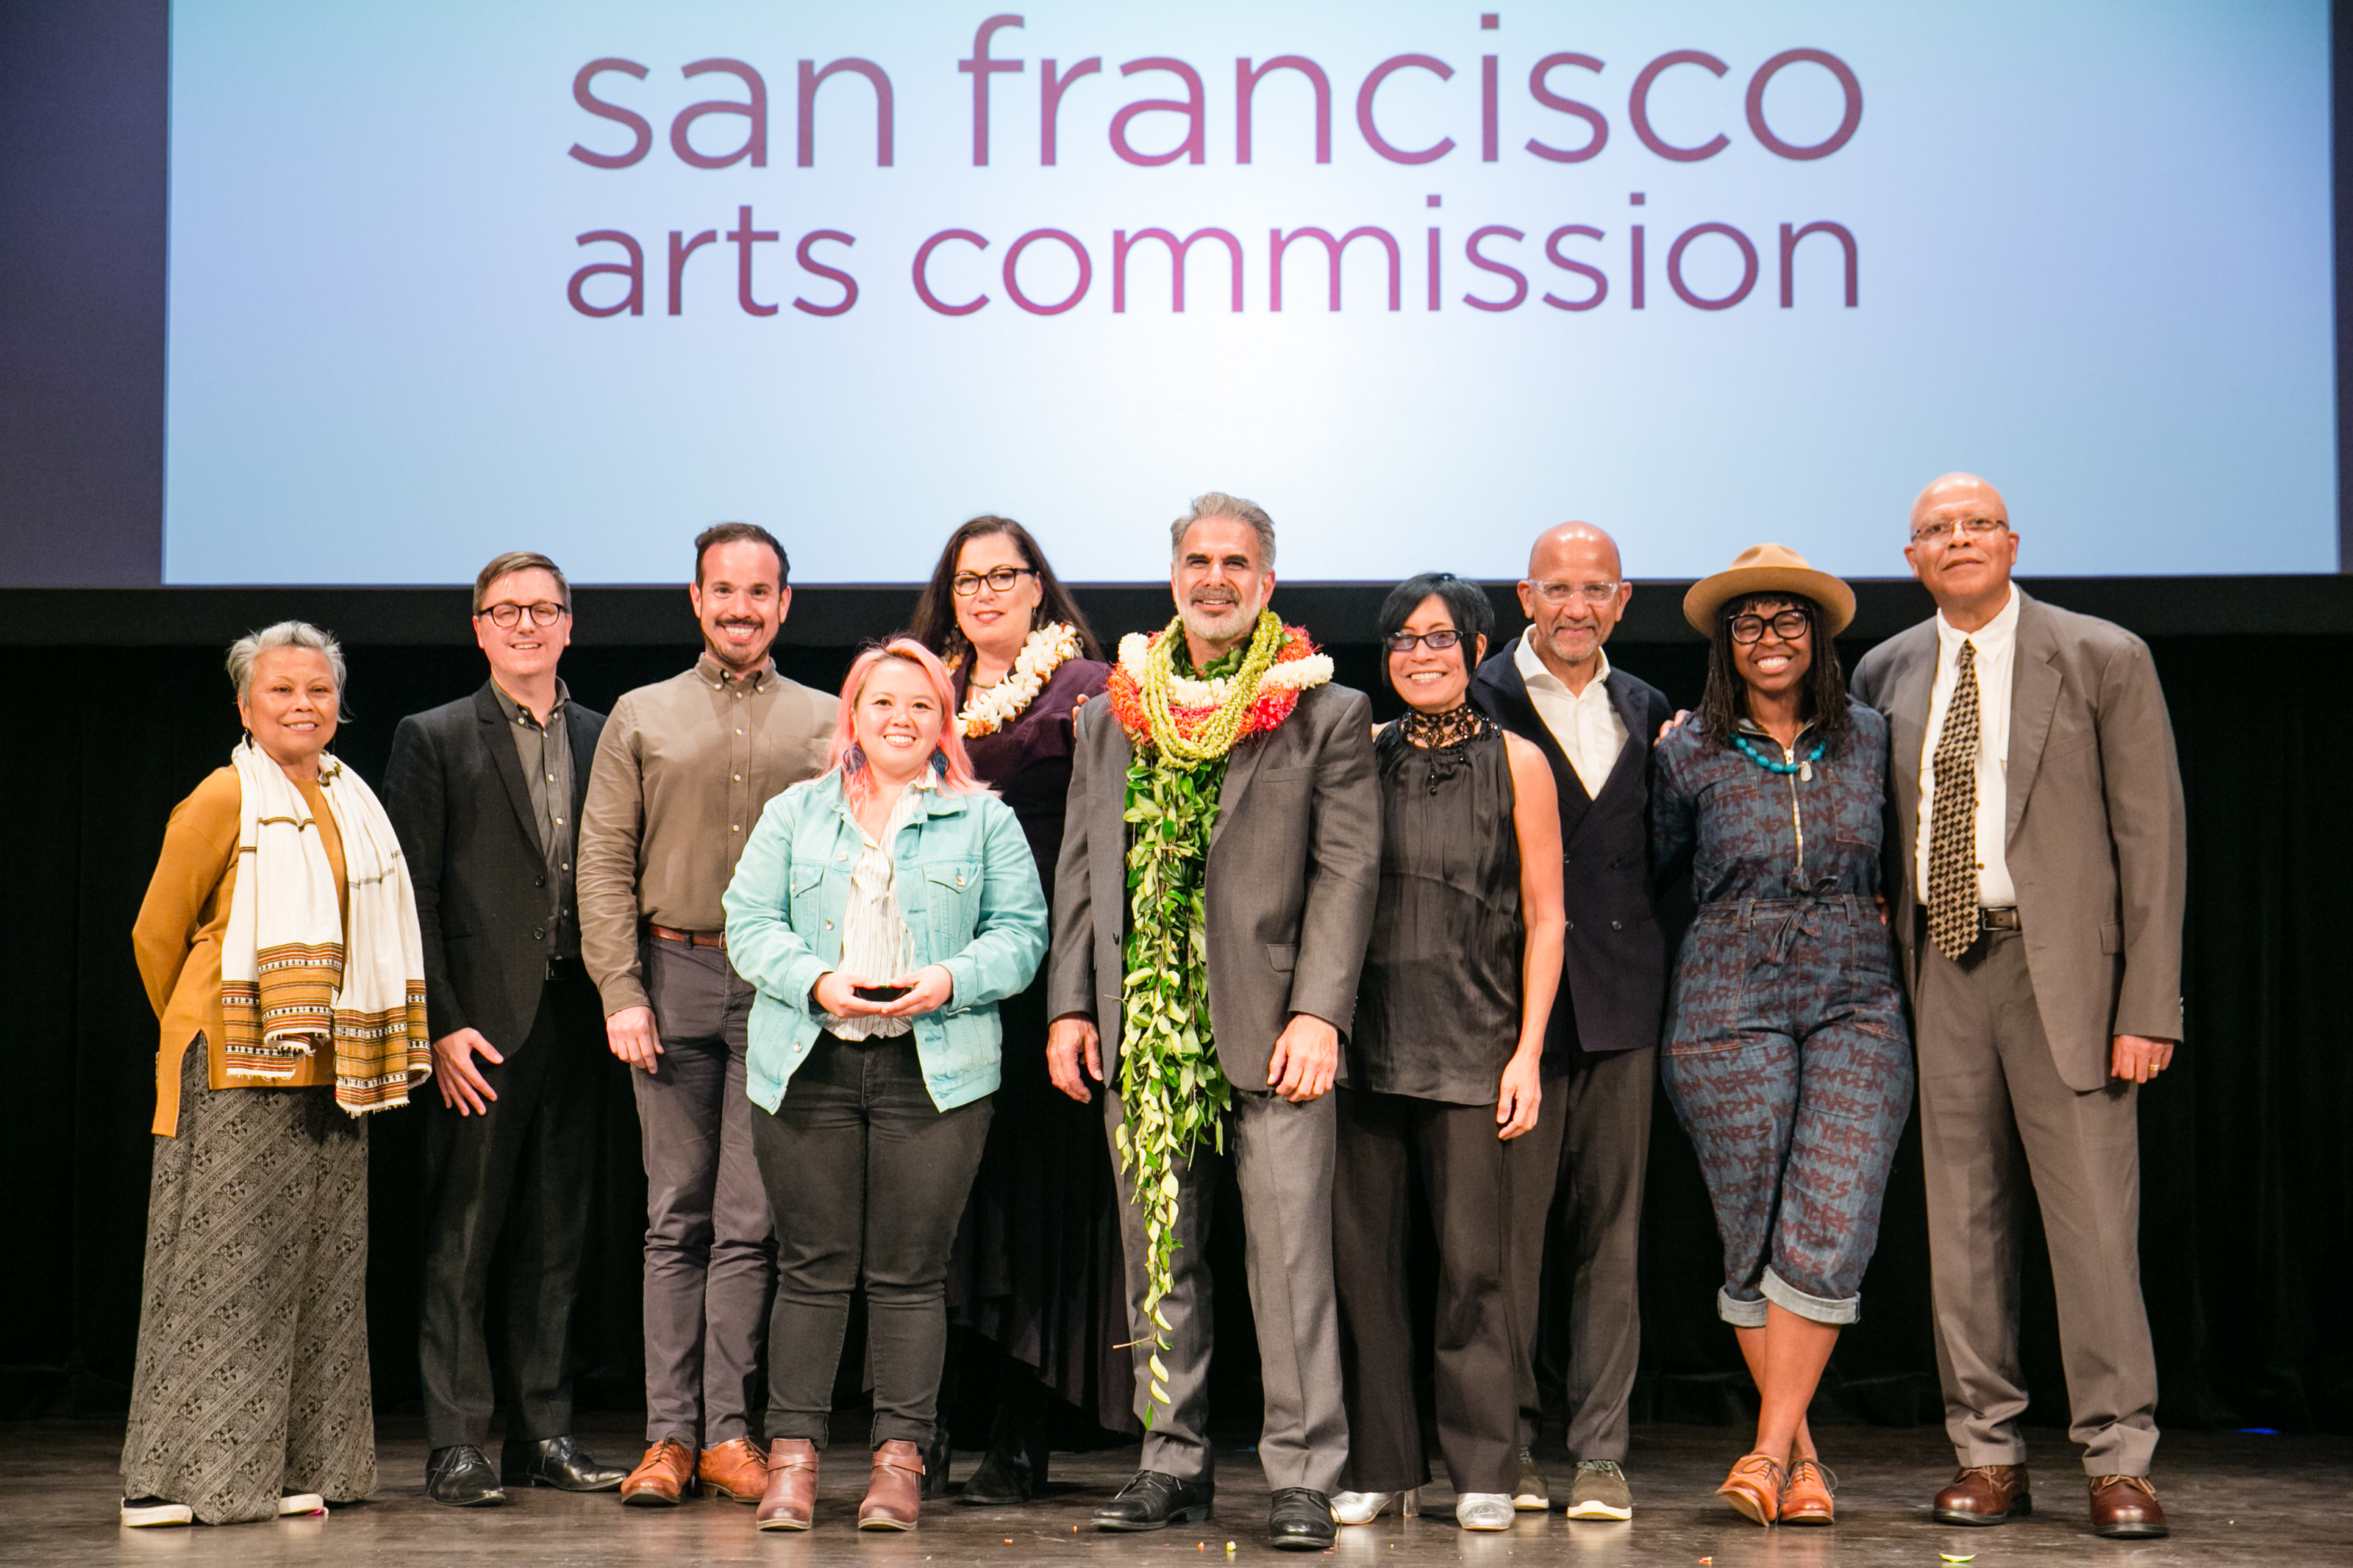 Commissioners, awardees, staff and special guests posing on stage in a group photo at the 4th Annual Grants Convening. Photo: Andria Lo